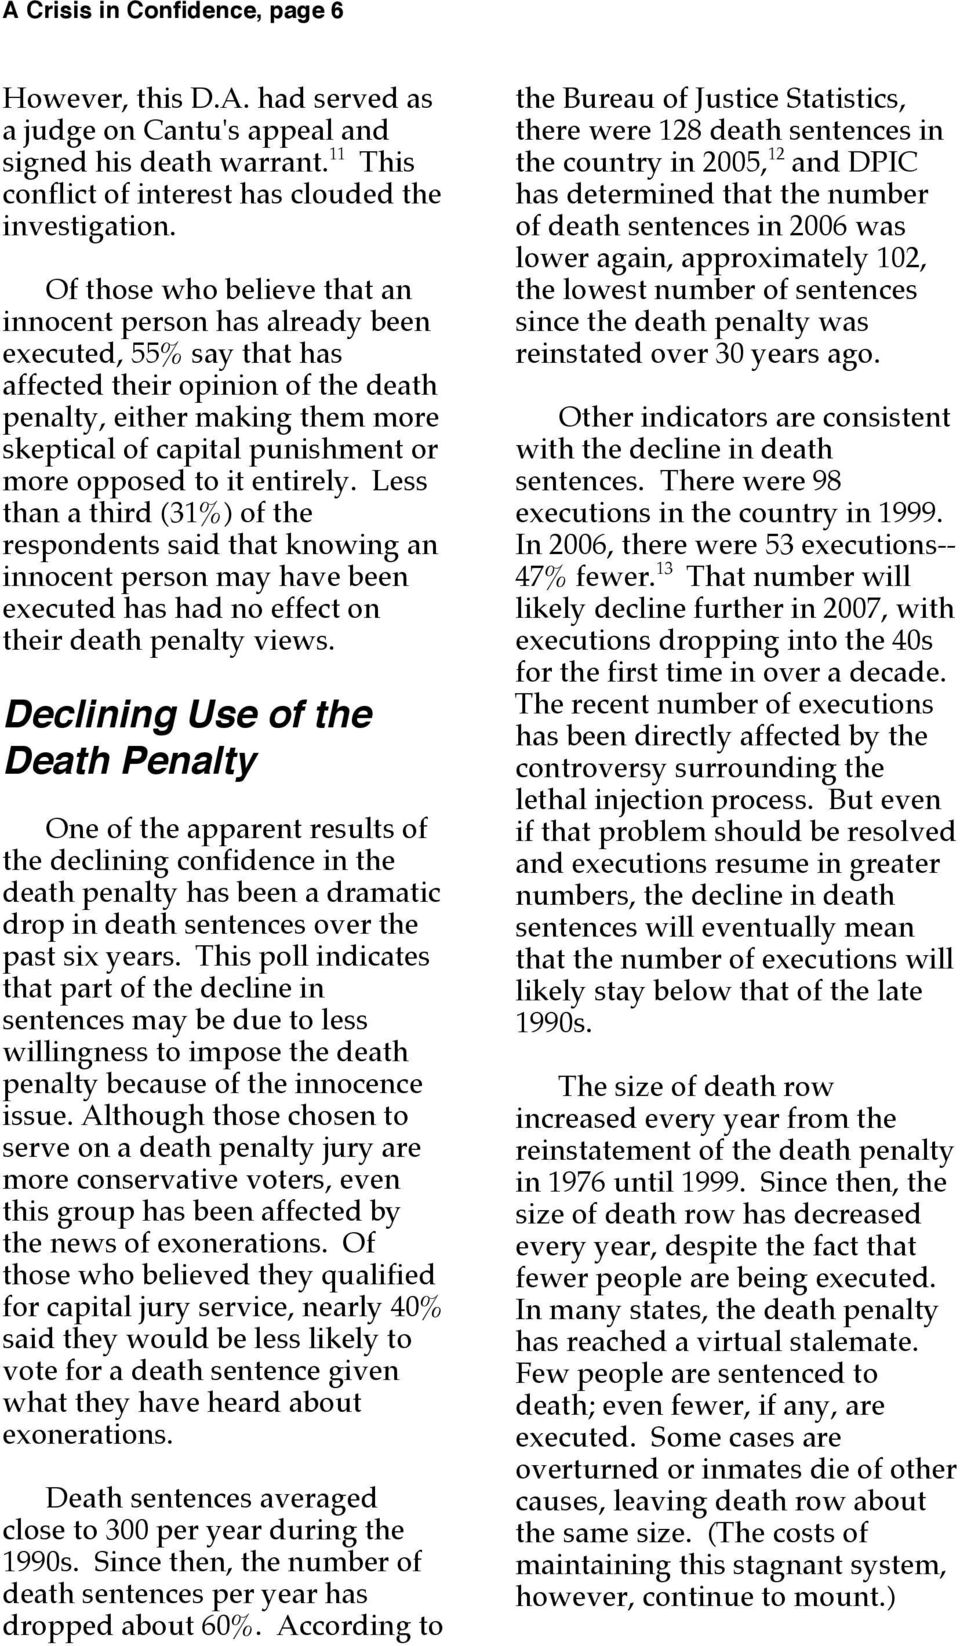 opposed to it entirely. Less than a third (31%) of the respondents said that knowing an innocent person may have been executed has had no effect on their death penalty views.